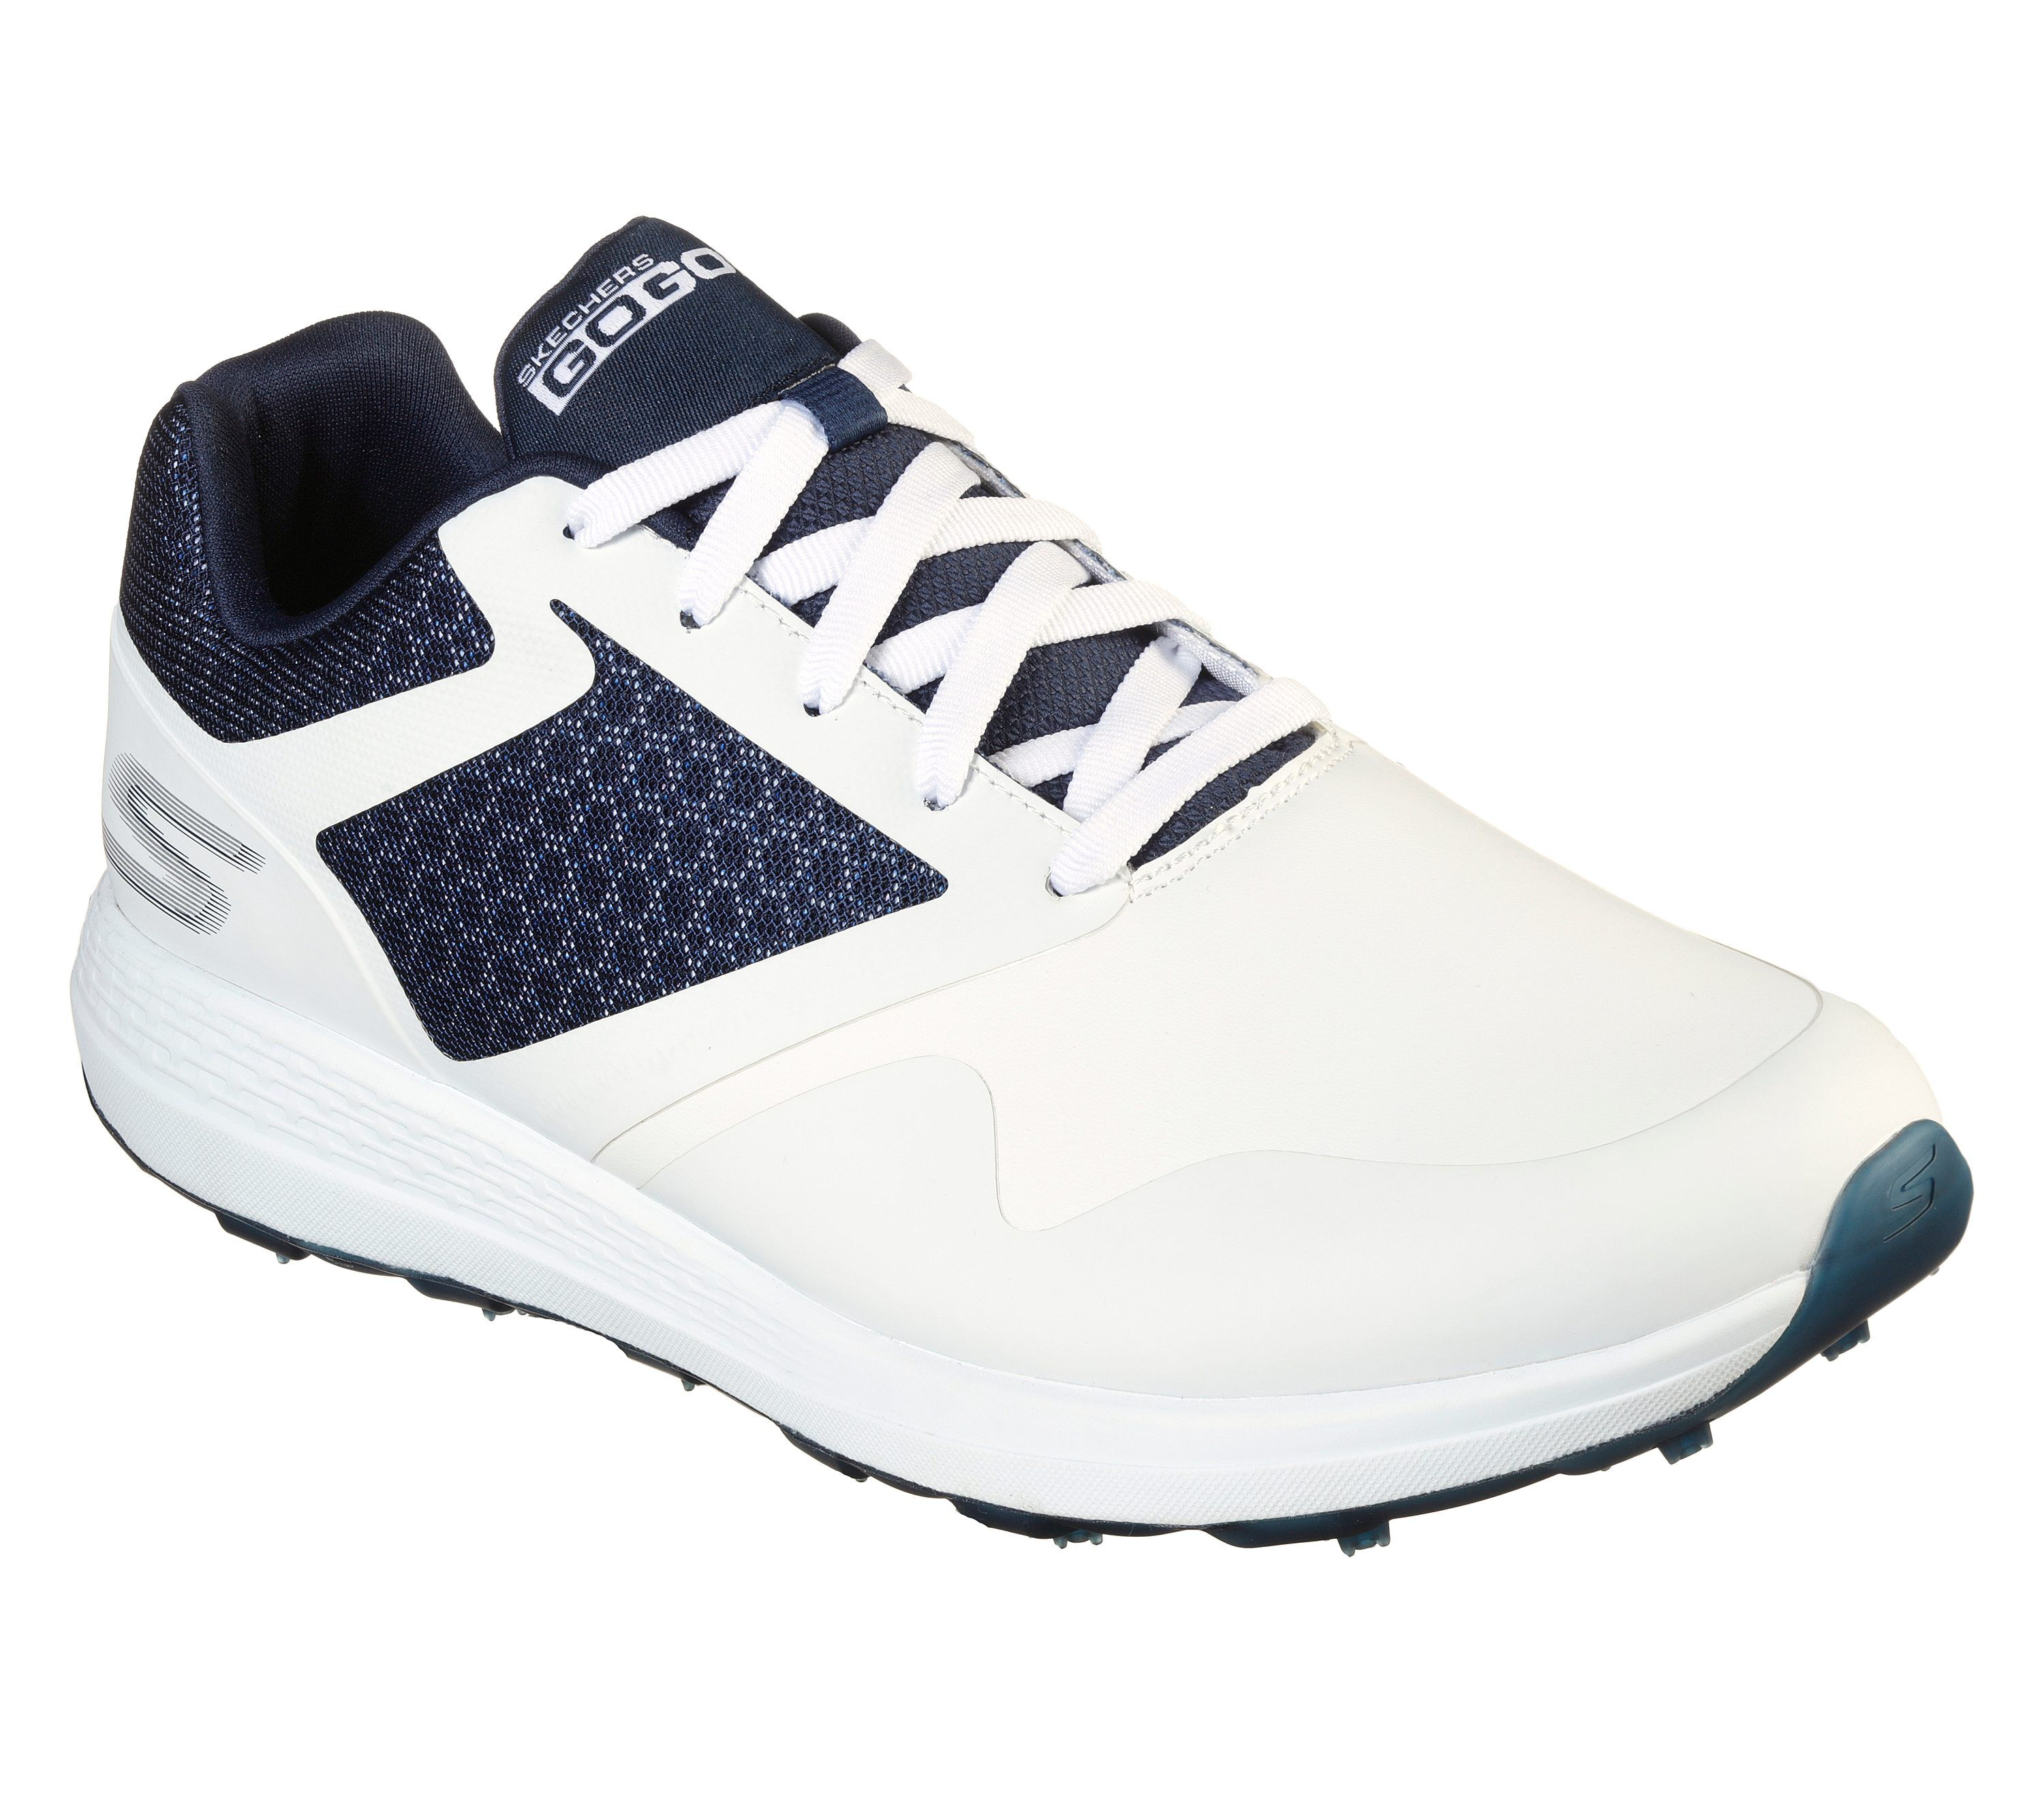 skechers on the go navy white Limit